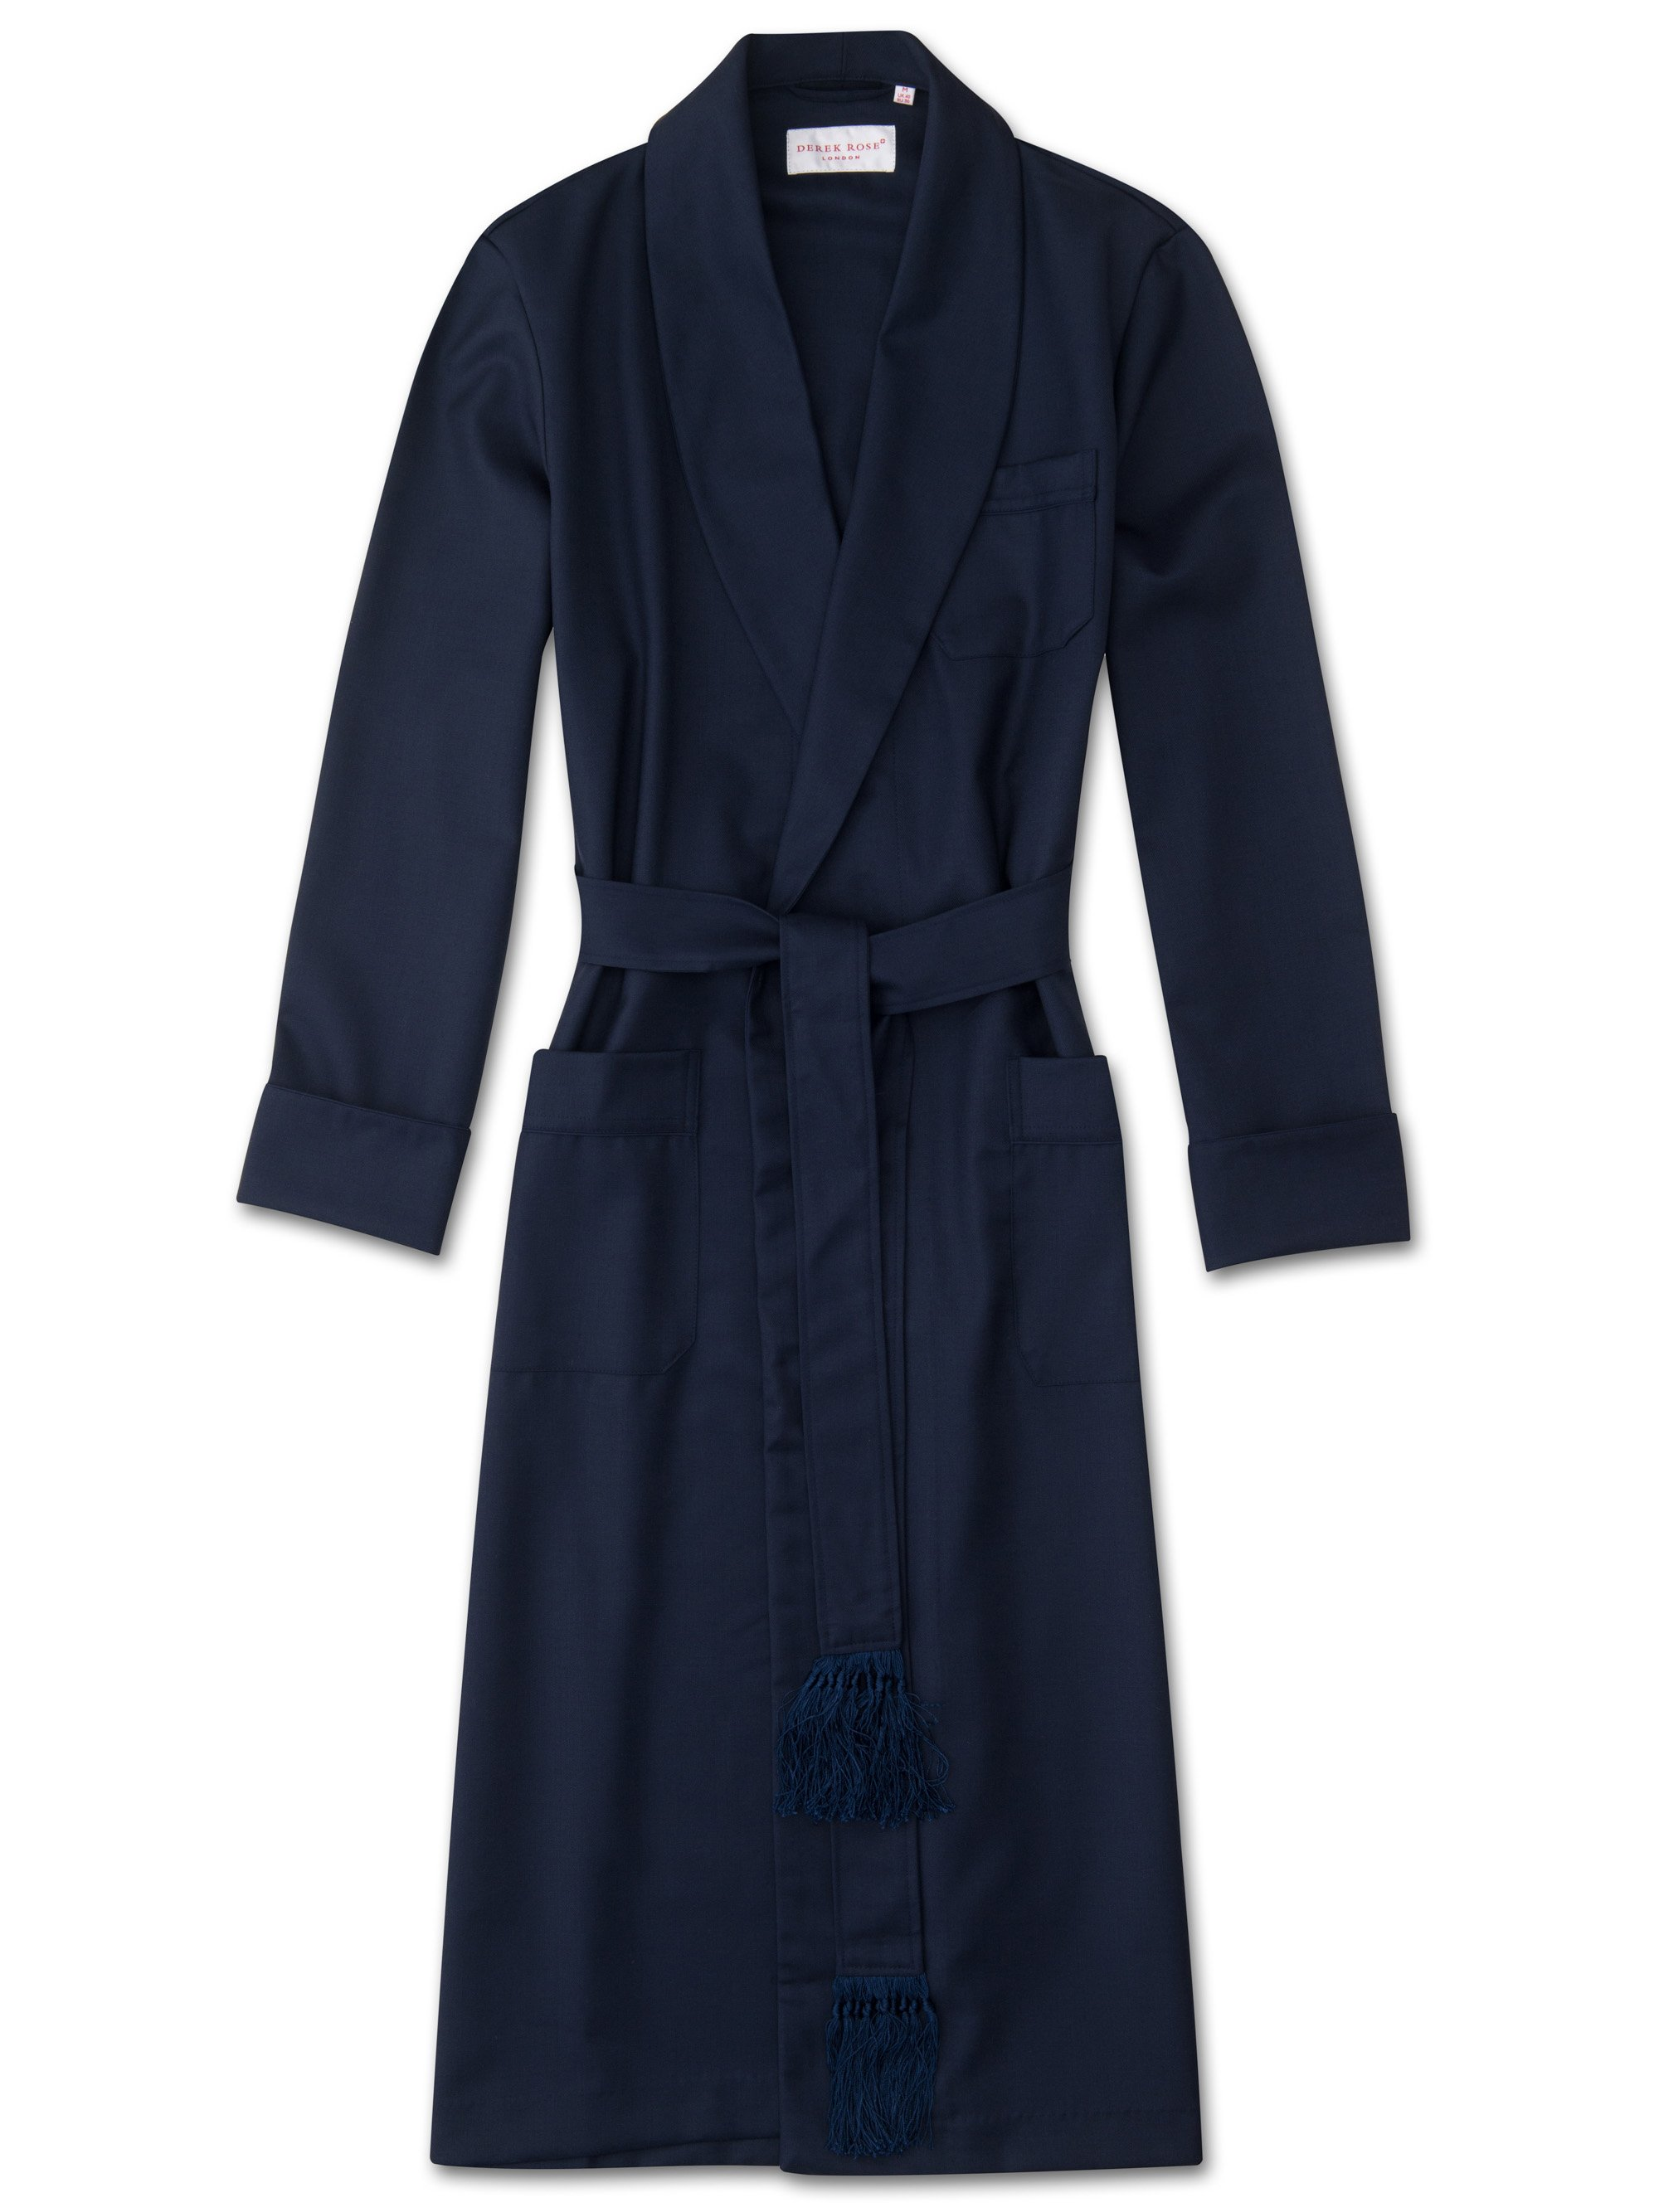 Men's Gown Westminster 2 Pure Wool Navy